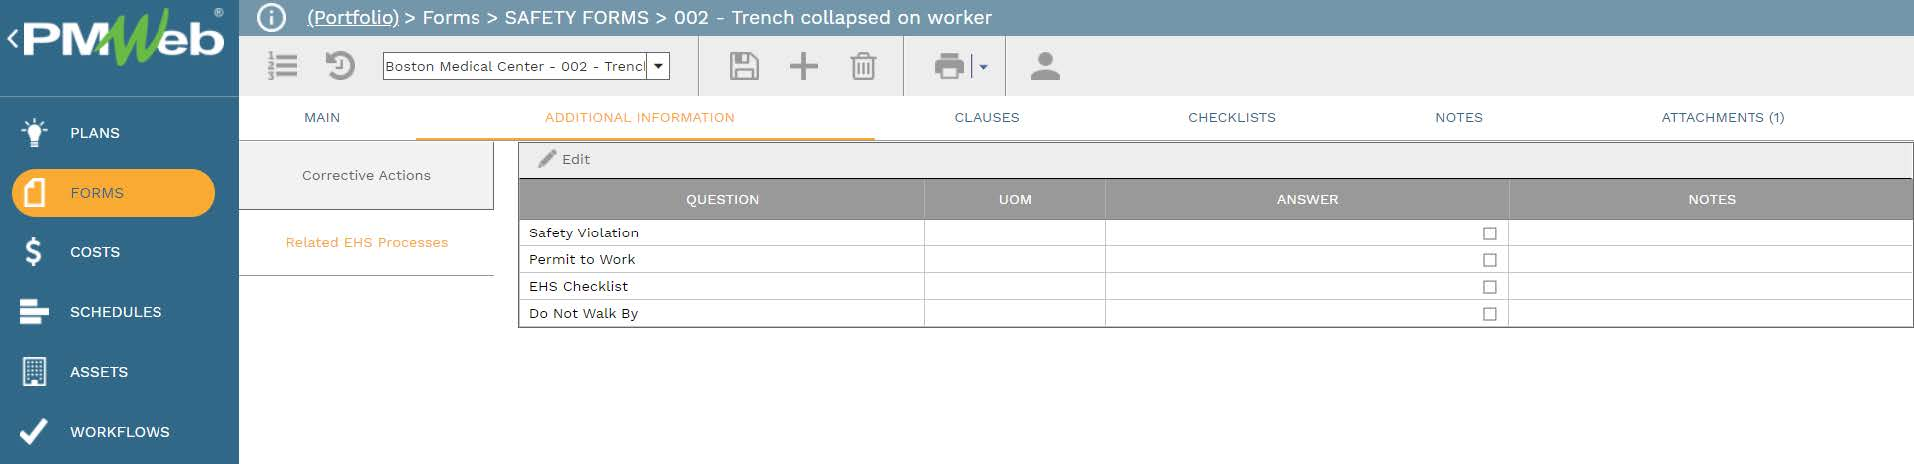 PMWeb 7 Forms Safety Forms Trench Collapsed on Worker Additional Information